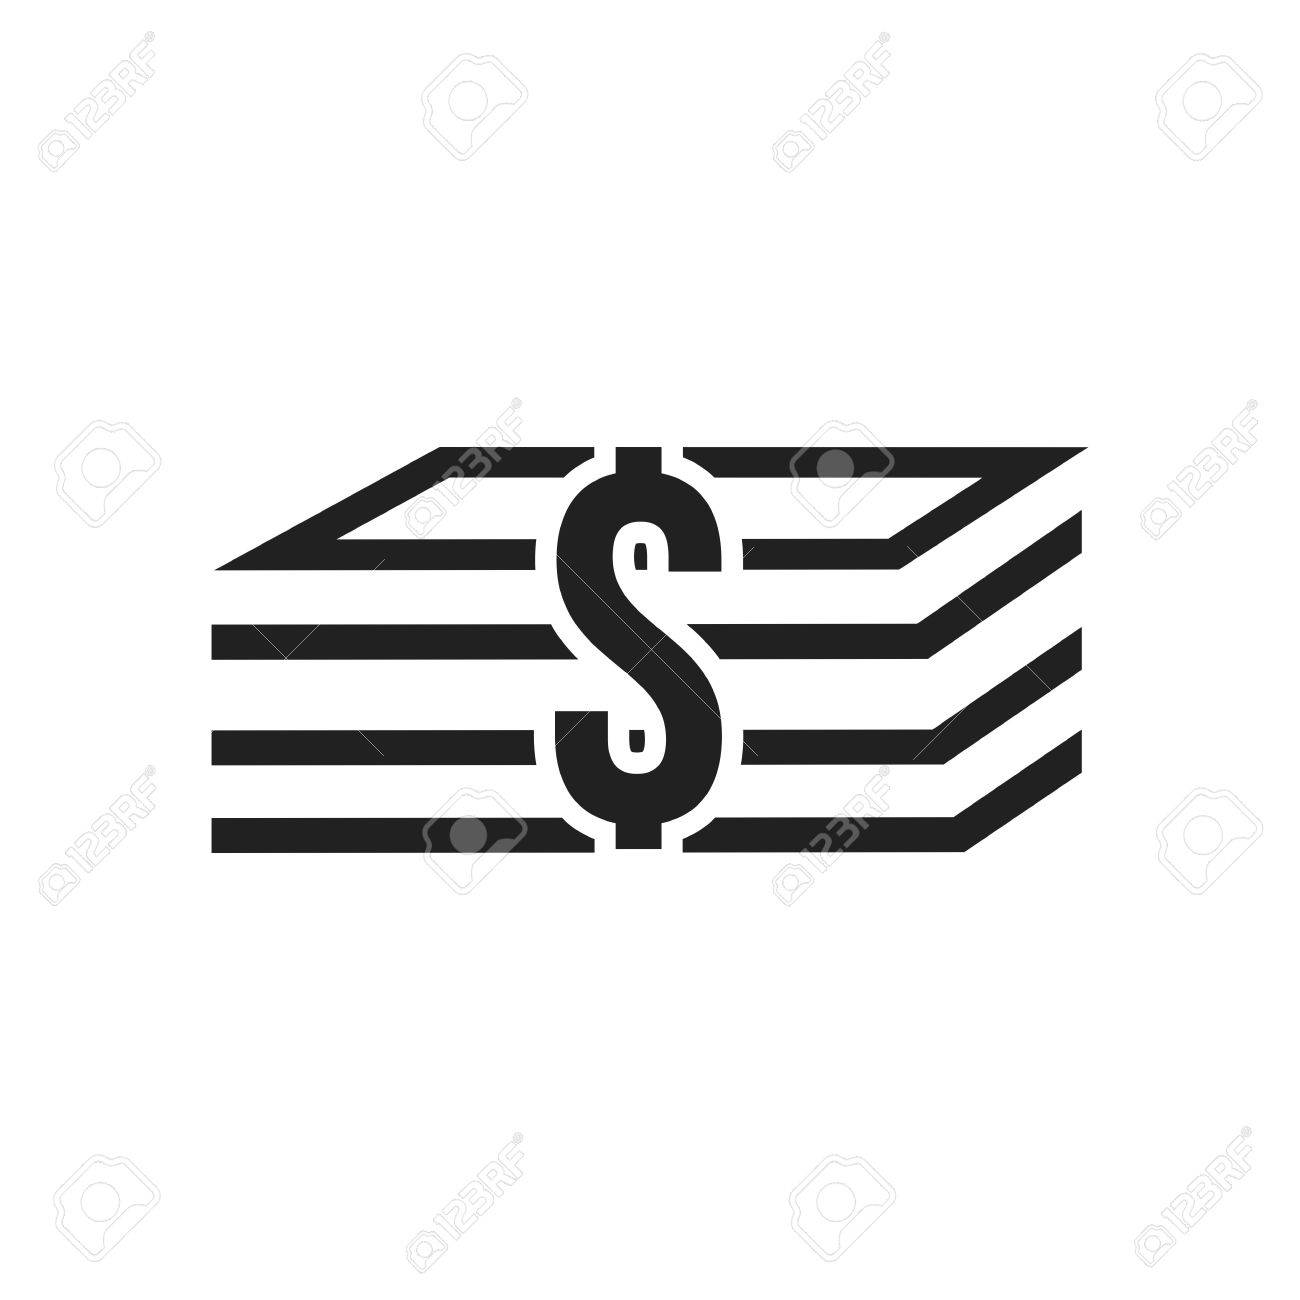 Billing Payments Invoices Icon Vector ImageCan Also Be Used - Billing and invoice apps